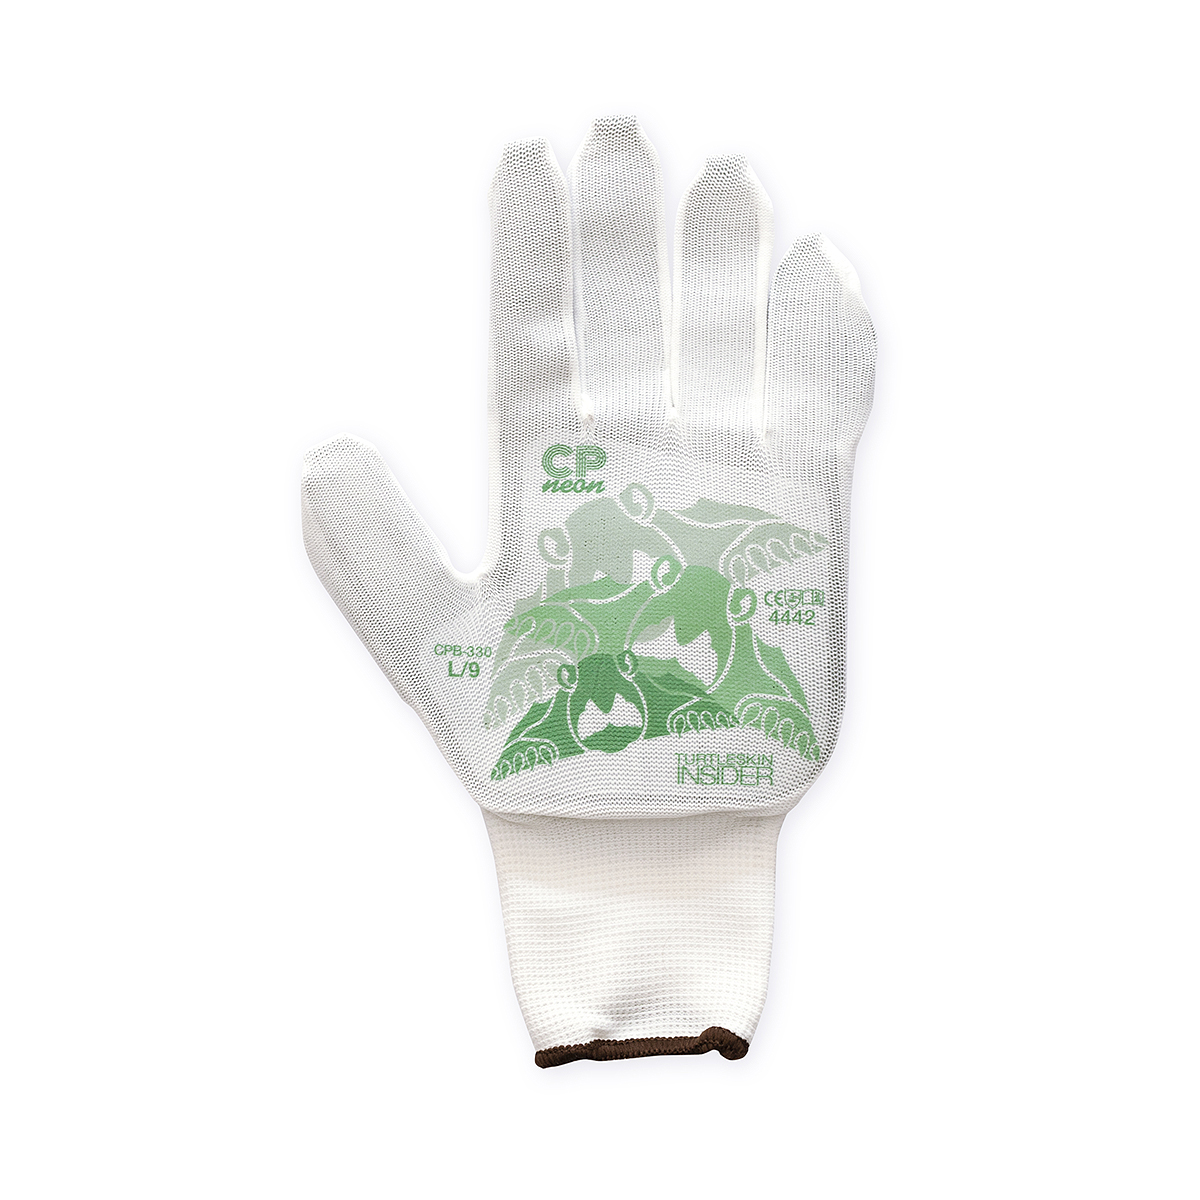 Turtleskin Gloves - Size Large